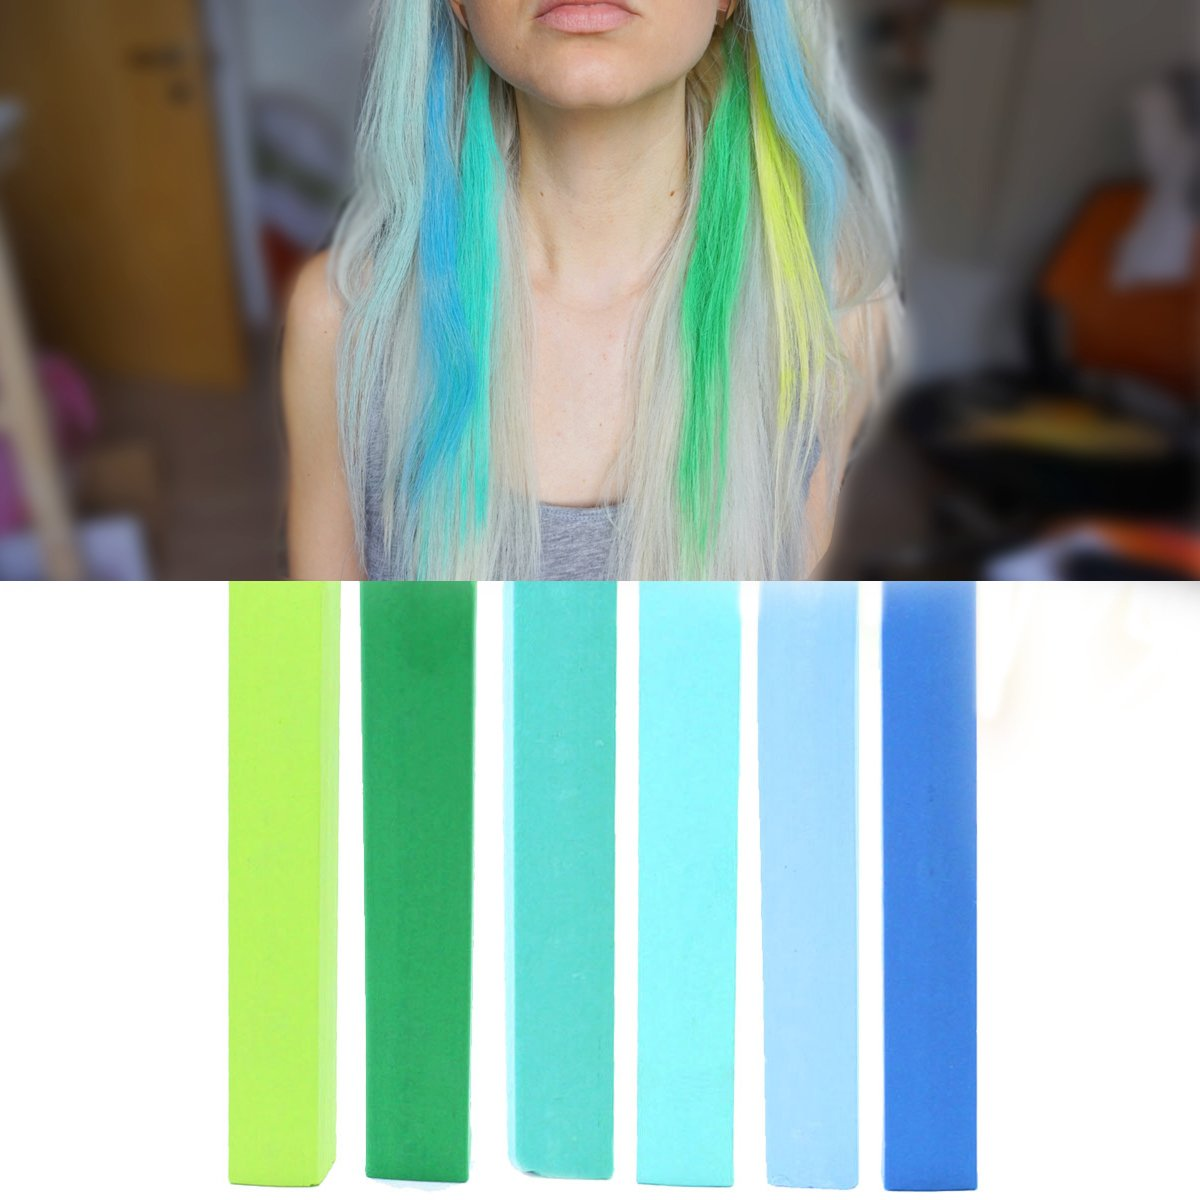 Best Turquoise Ombre Kylie Jenner Mint Hair Dye Set Green Blue Mint And Turquoise Hair Color Mojito Temporary Hair Dye With Shades Of Light Green Dark Green Light Blue